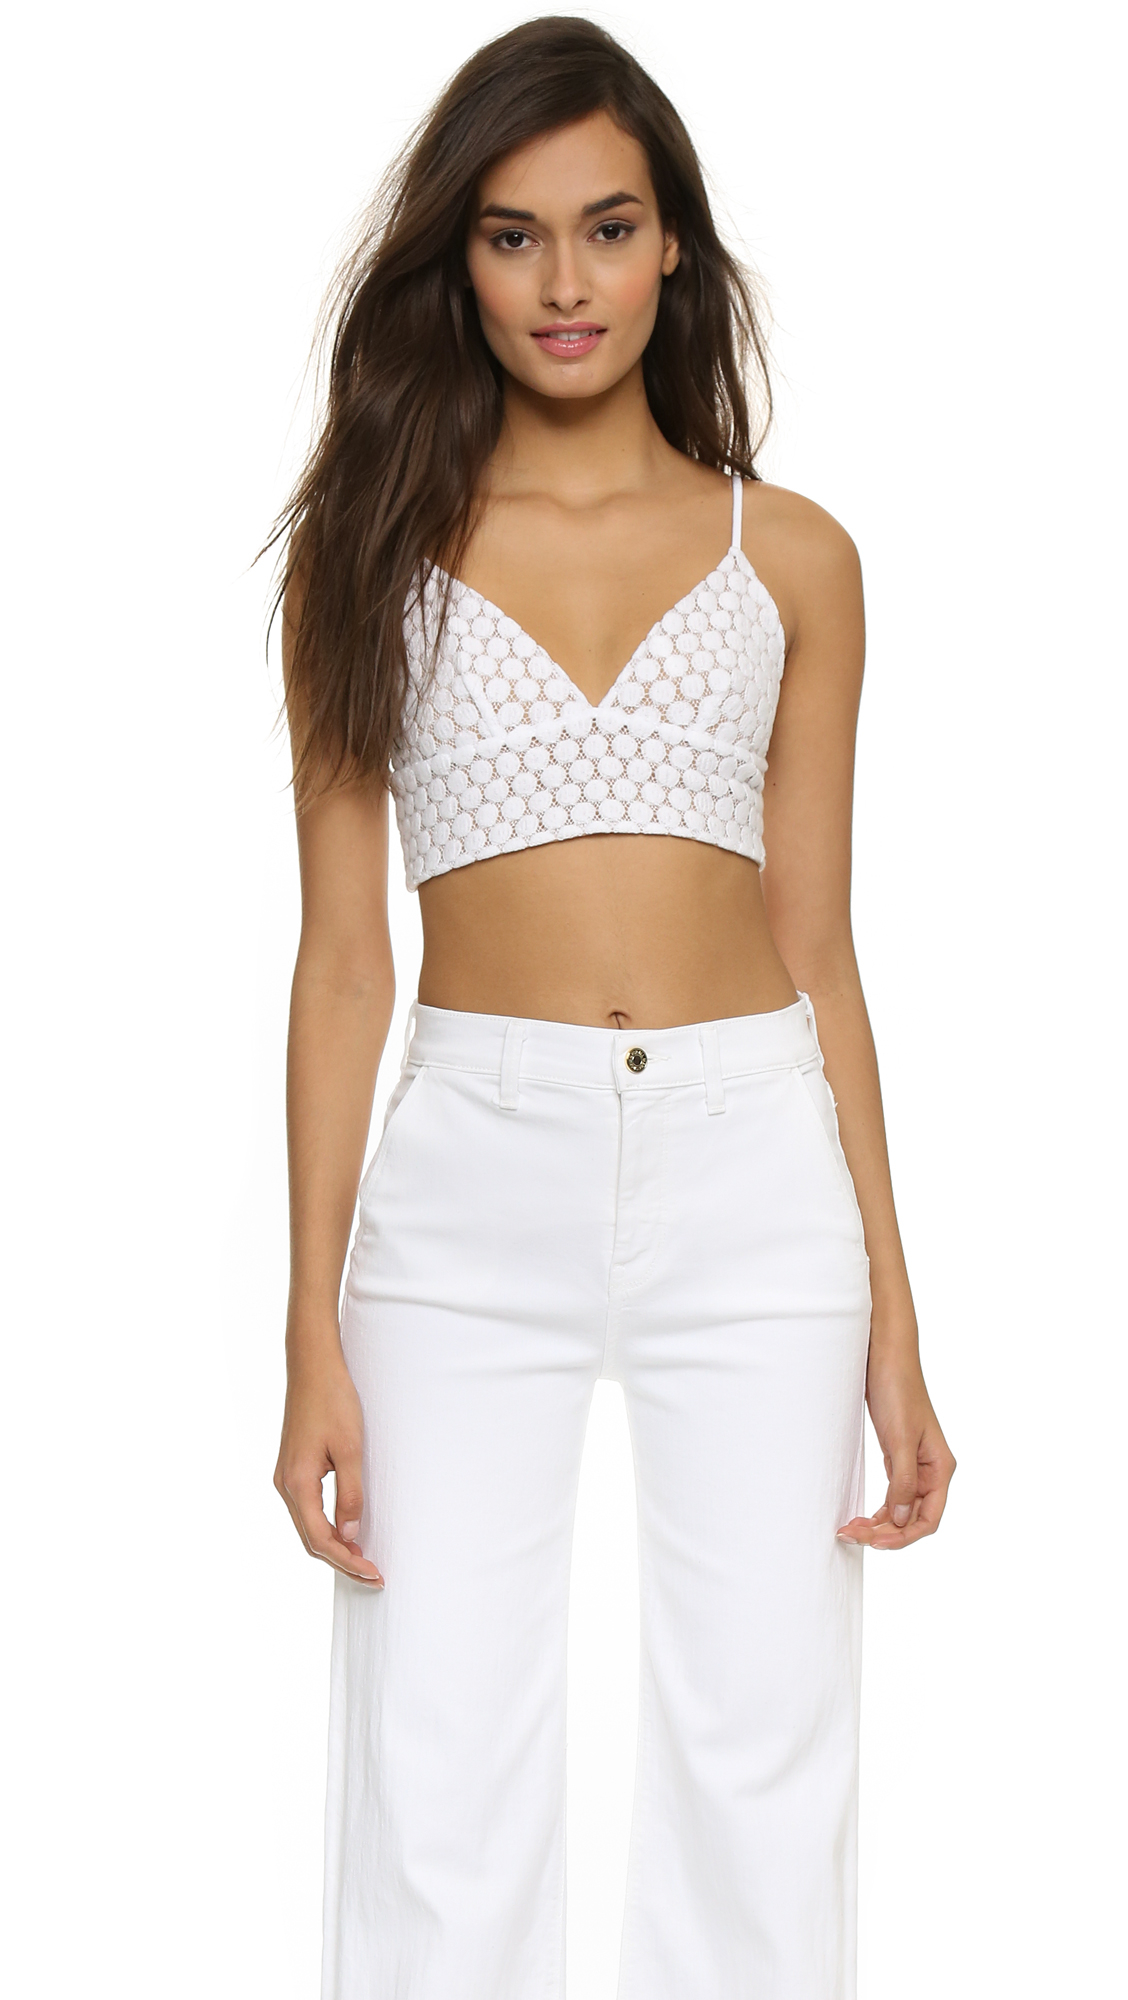 39dc47aa33 David Lerner Lace Bralette Top - Ink in White - Lyst